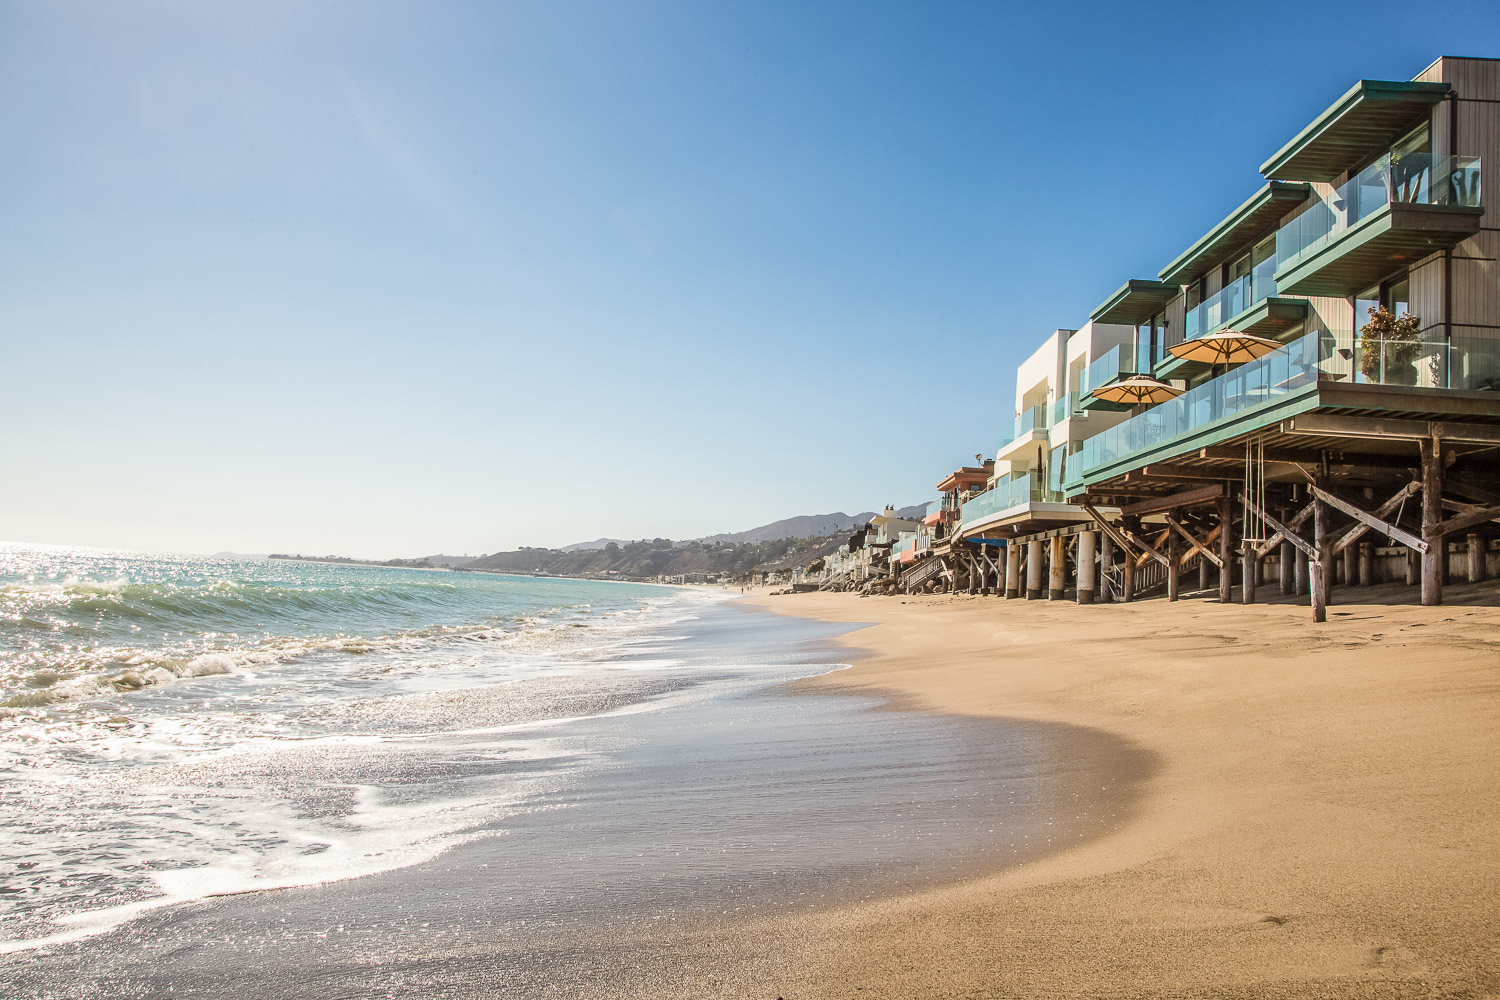 LosAngeles_CarbonBeach_34